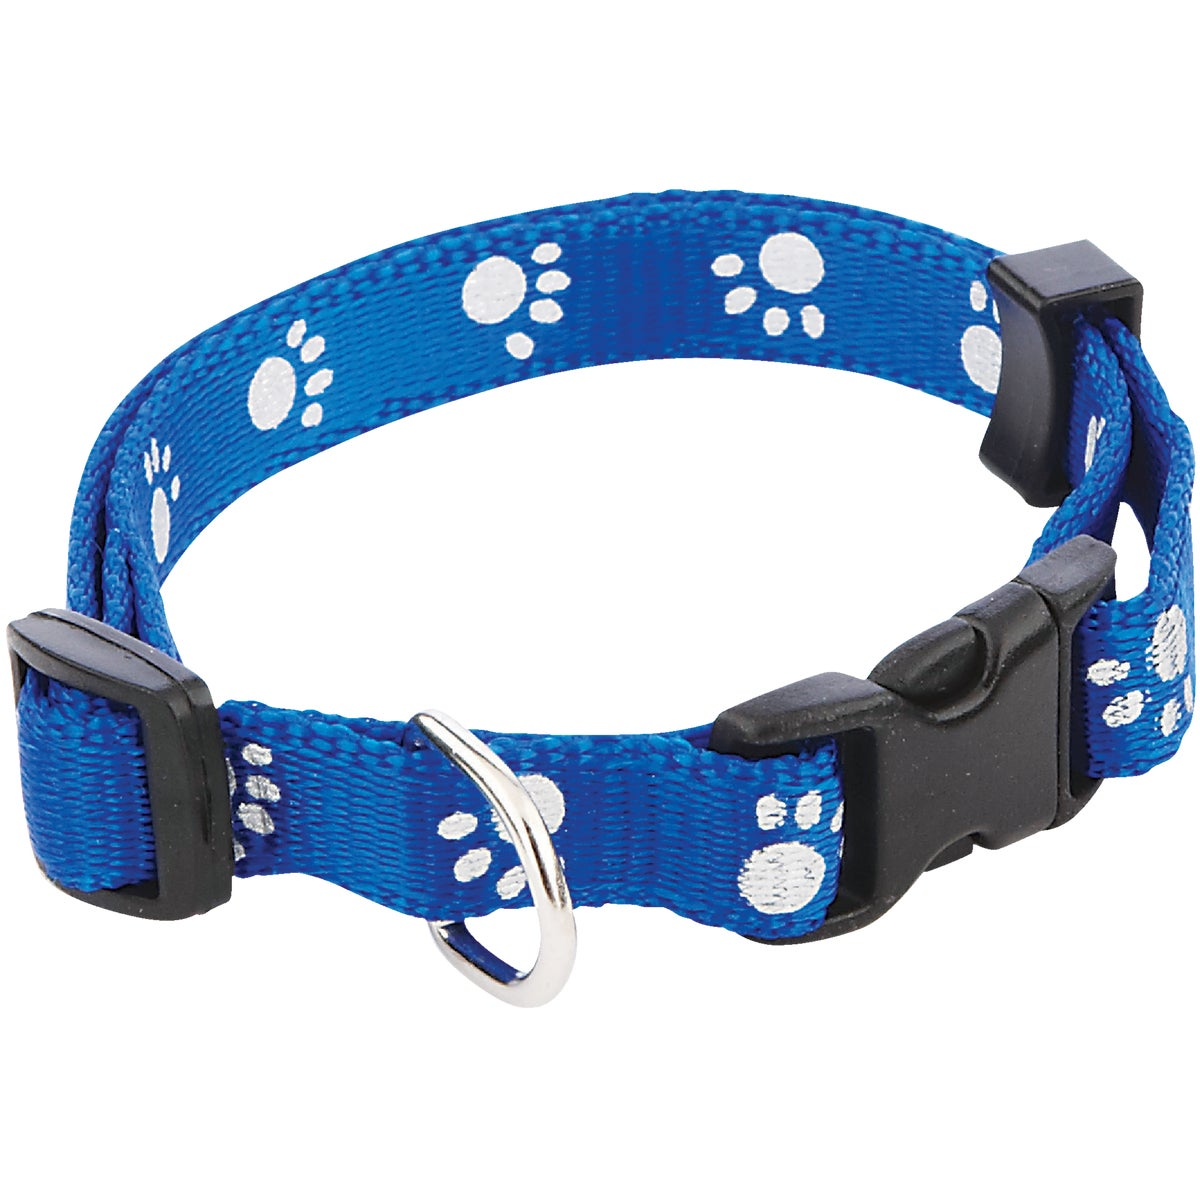 3/8X8-12 PAW REFL COLLAR - 39201 by Westminster Pet